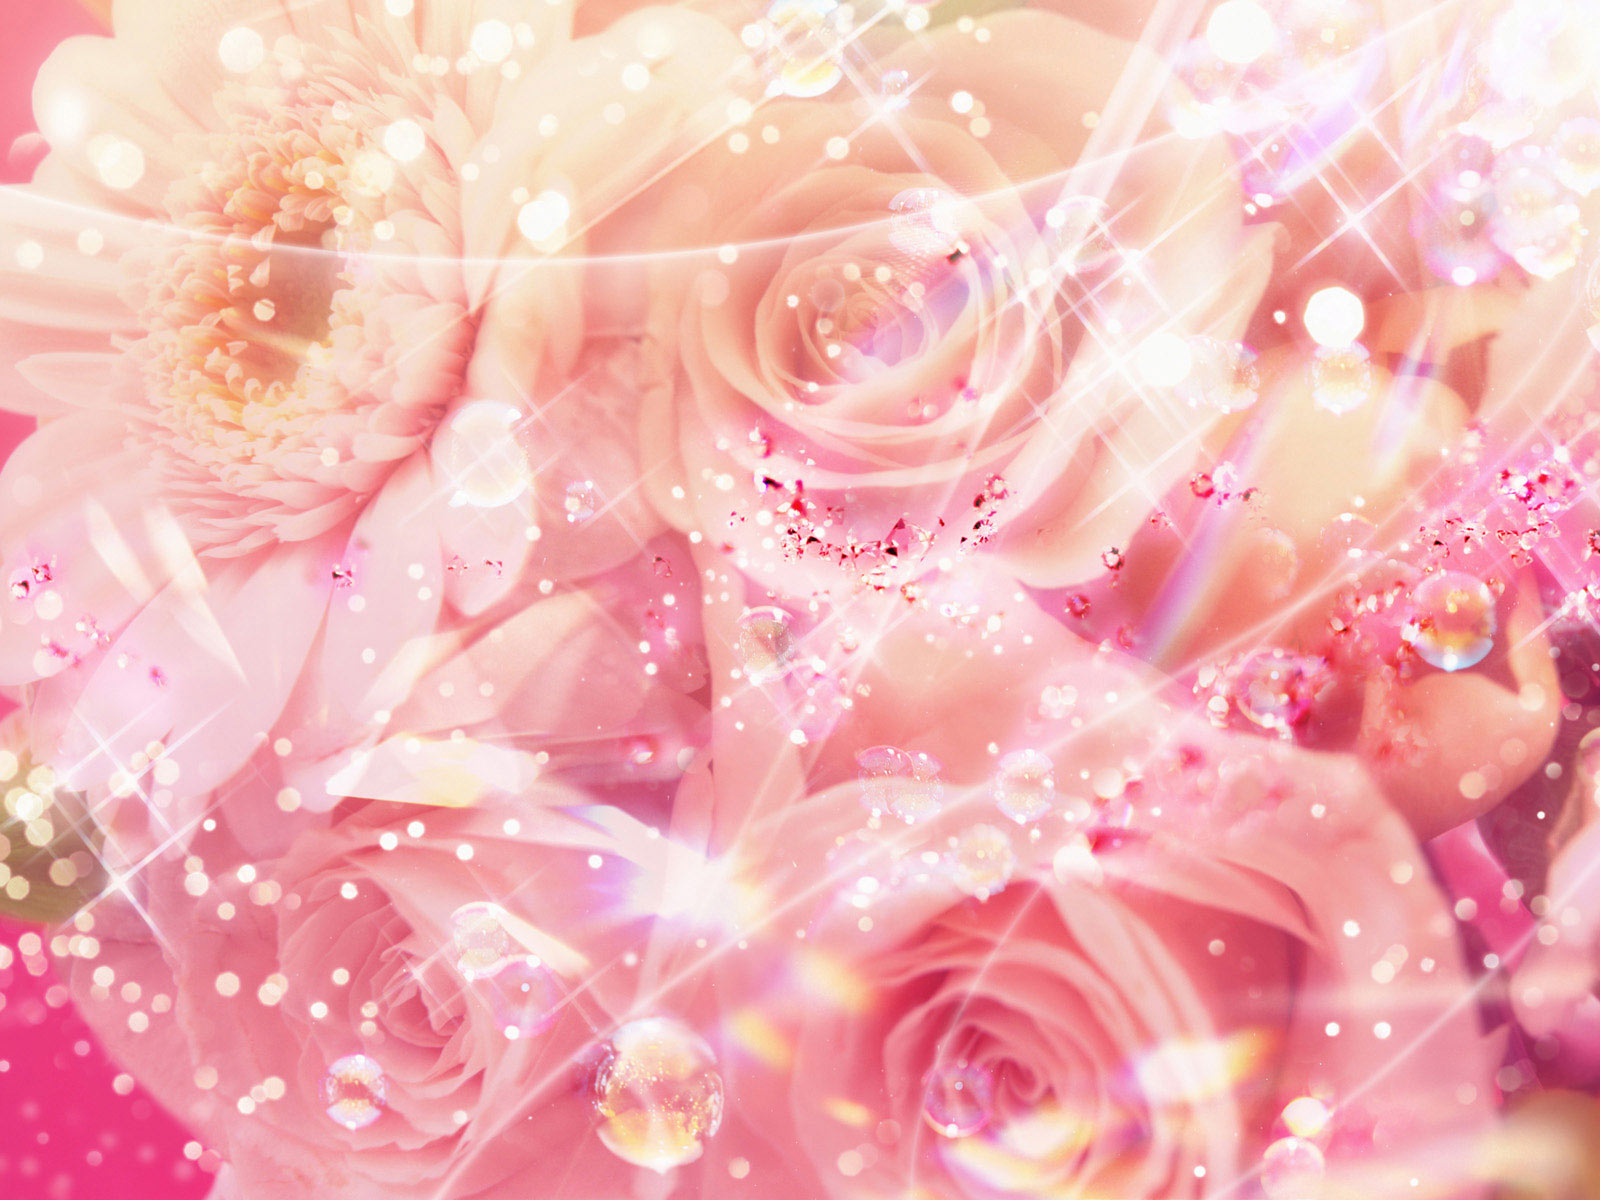 Pink Roses Wallpaper in high resolution for Get Pink Roses 1600x1200